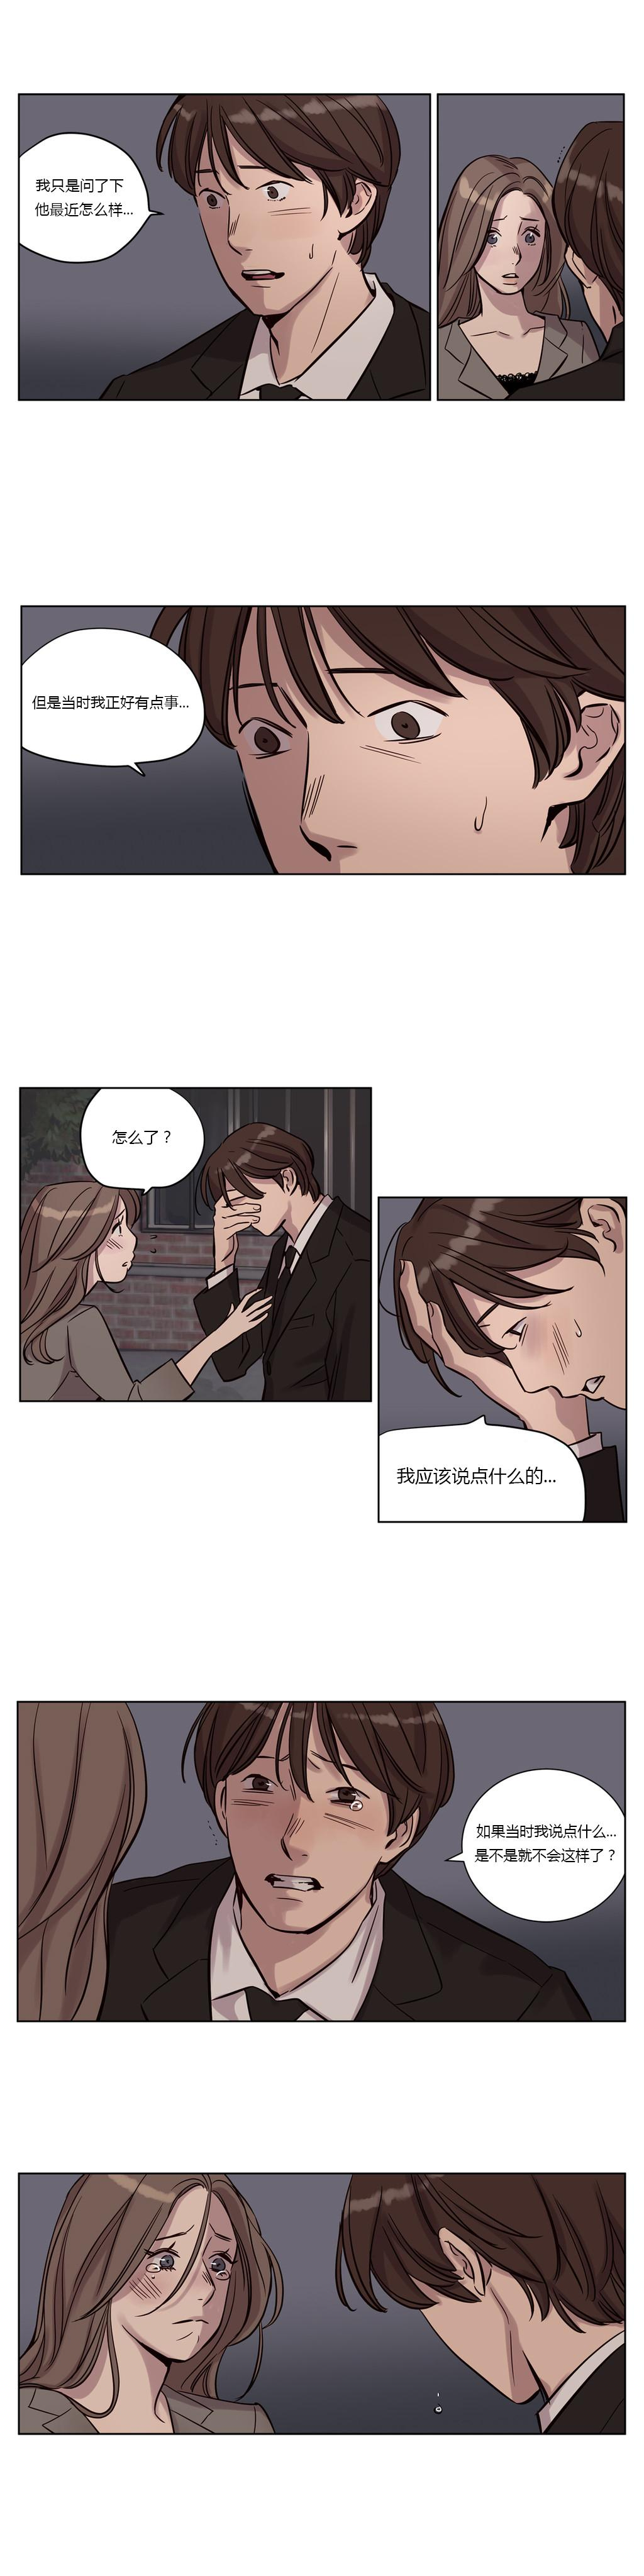 Atonement Camp Ch.0-36 179